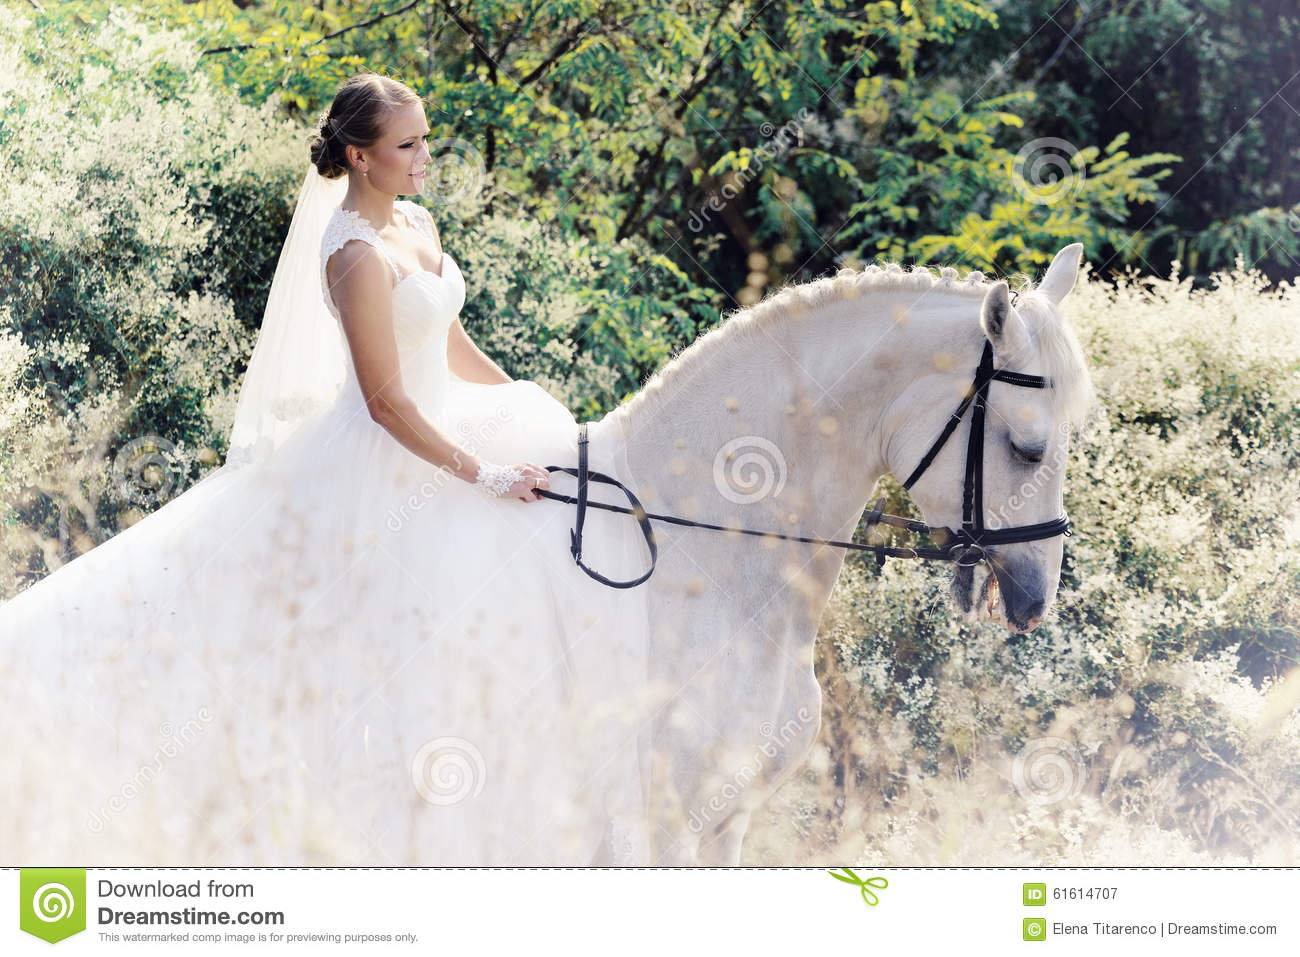 Wedding Bride With White Horse Stock Image Image Of Ceremony Forest 61614707